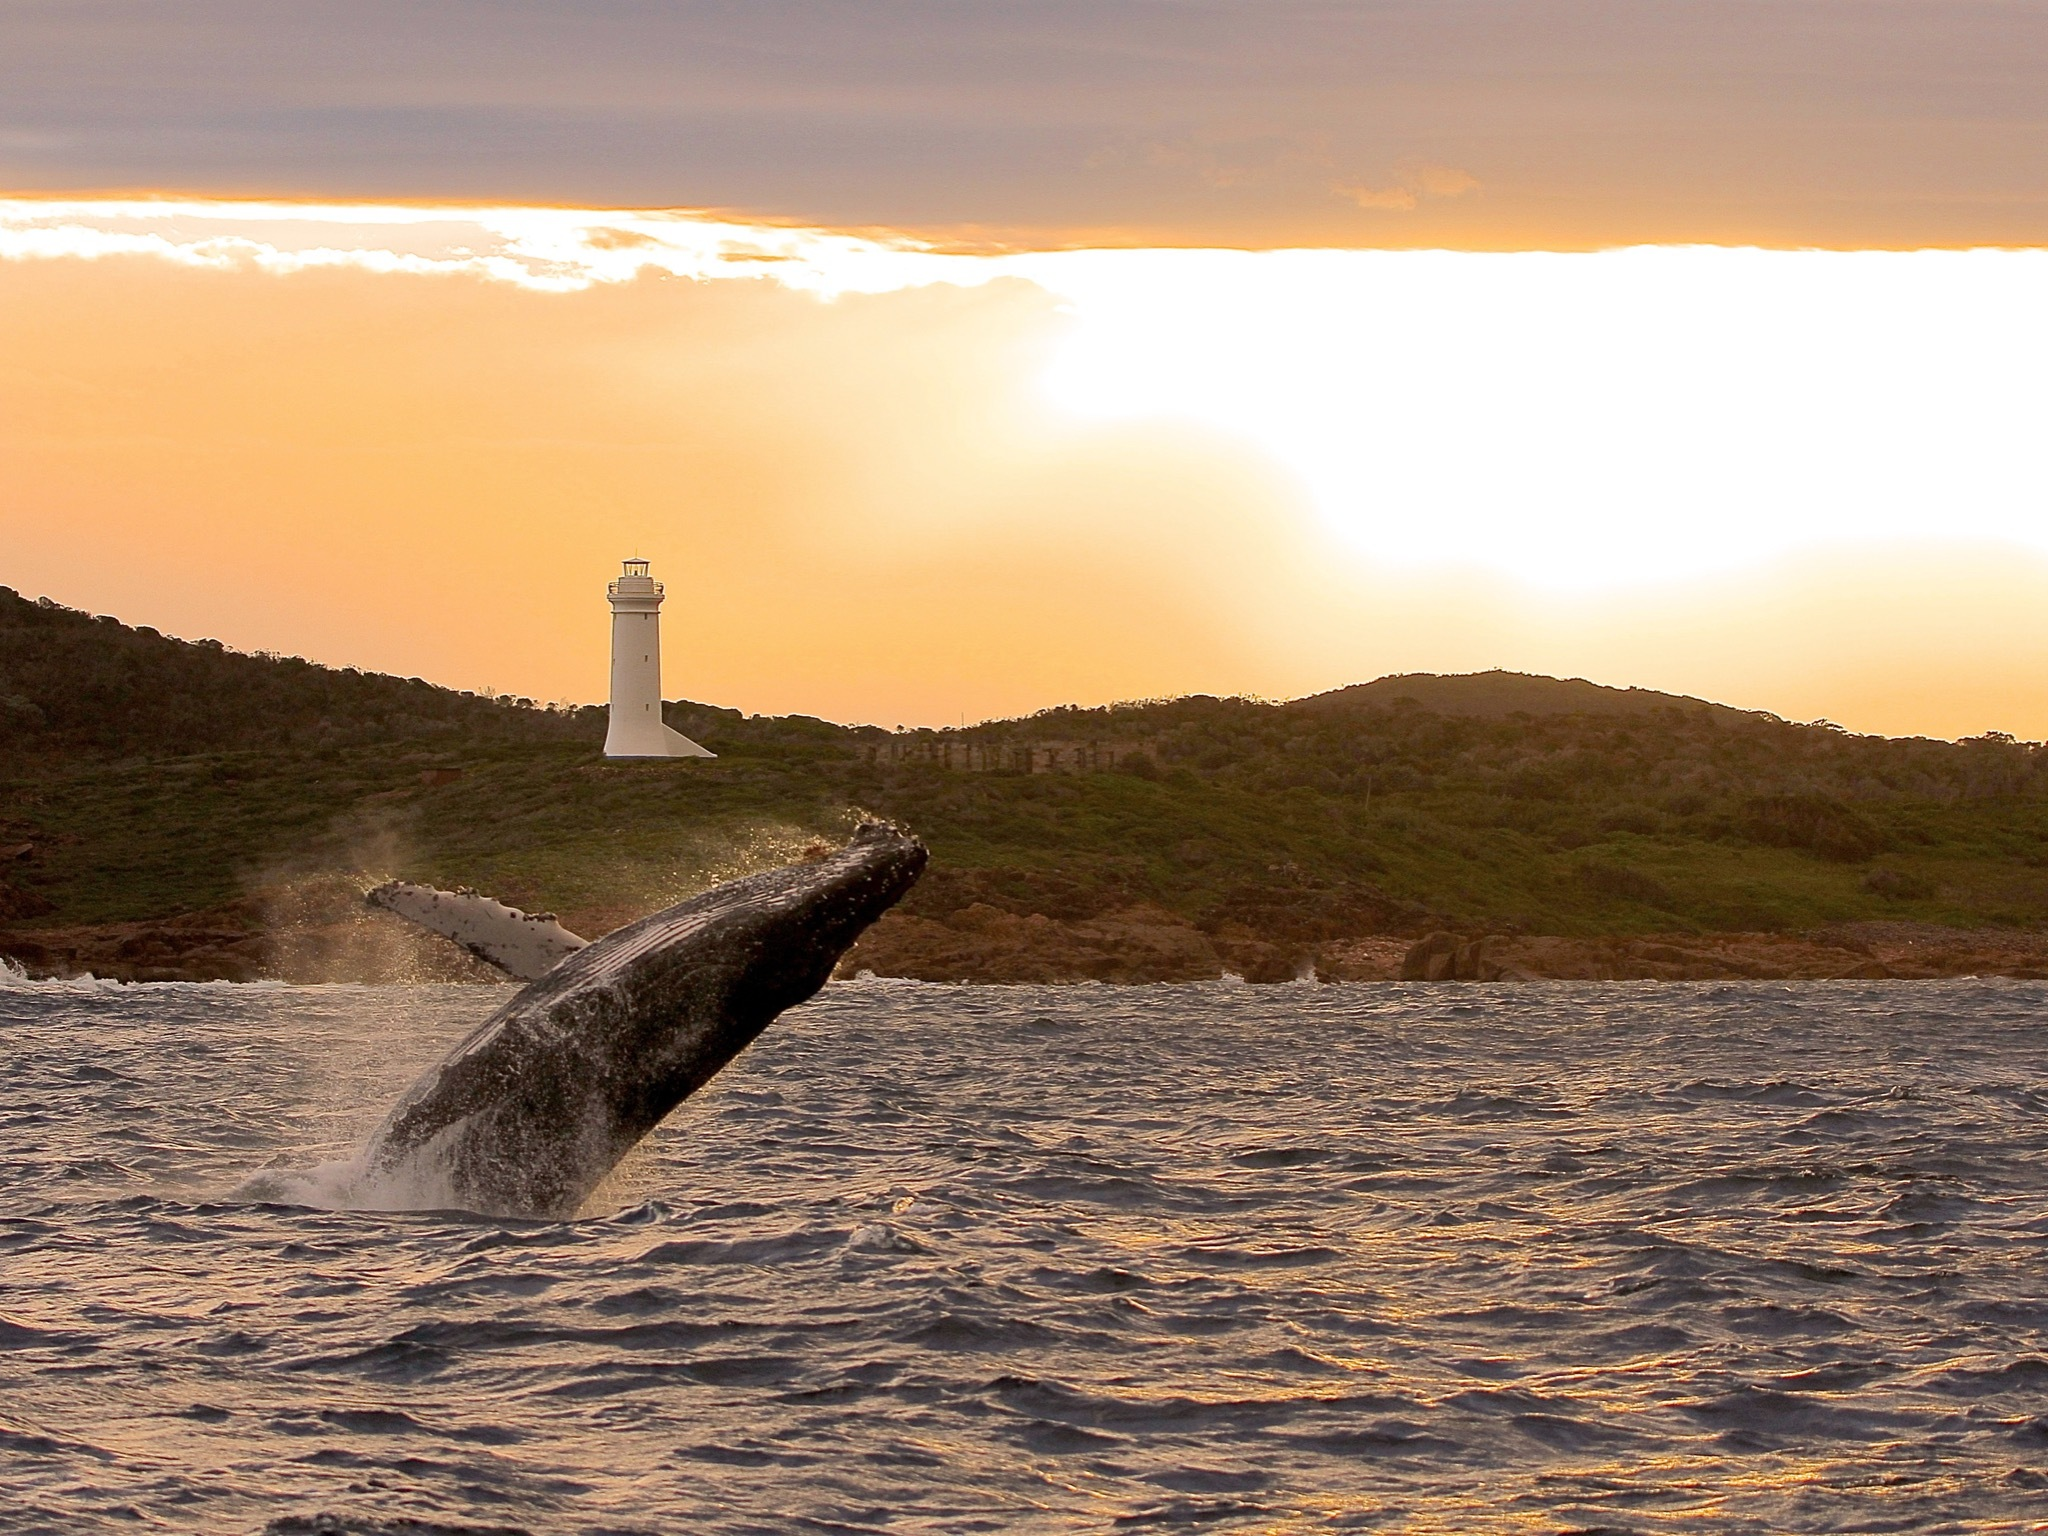 Photograph of whale breaching at sunset in Port Stephens